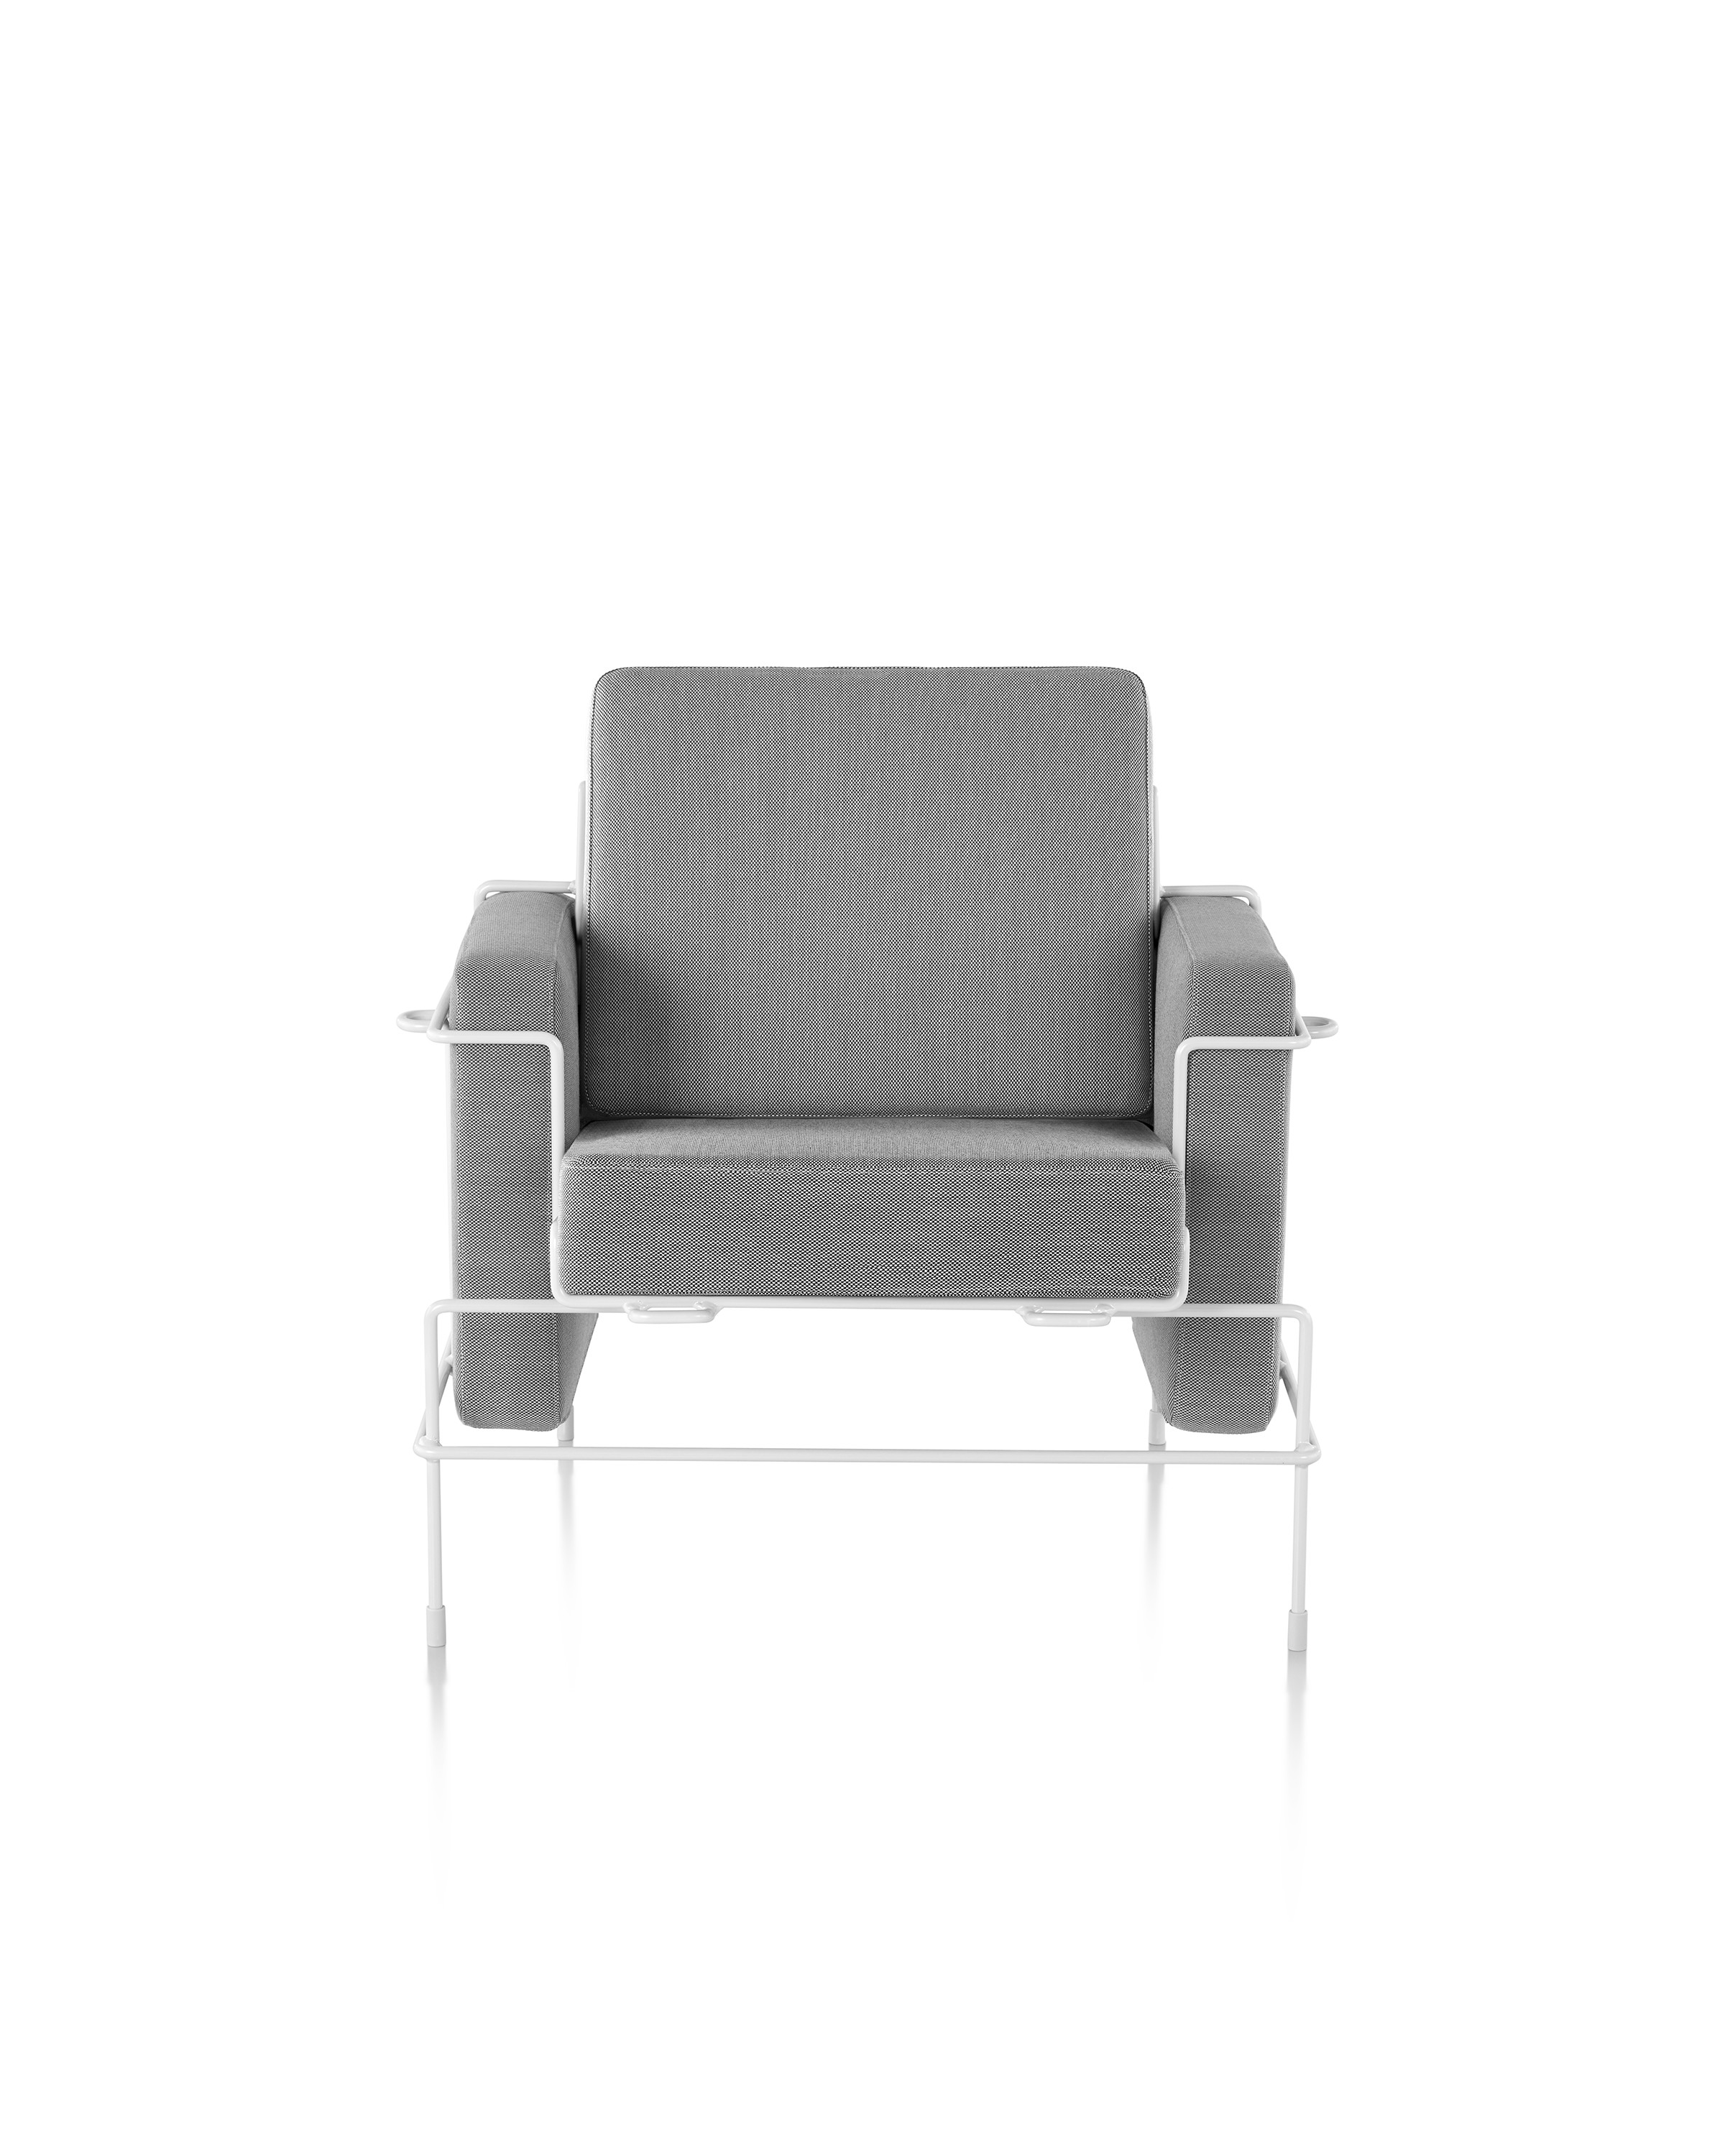 Magis Traffic Sofa–2 Seat 3D Product Models Herman Miller